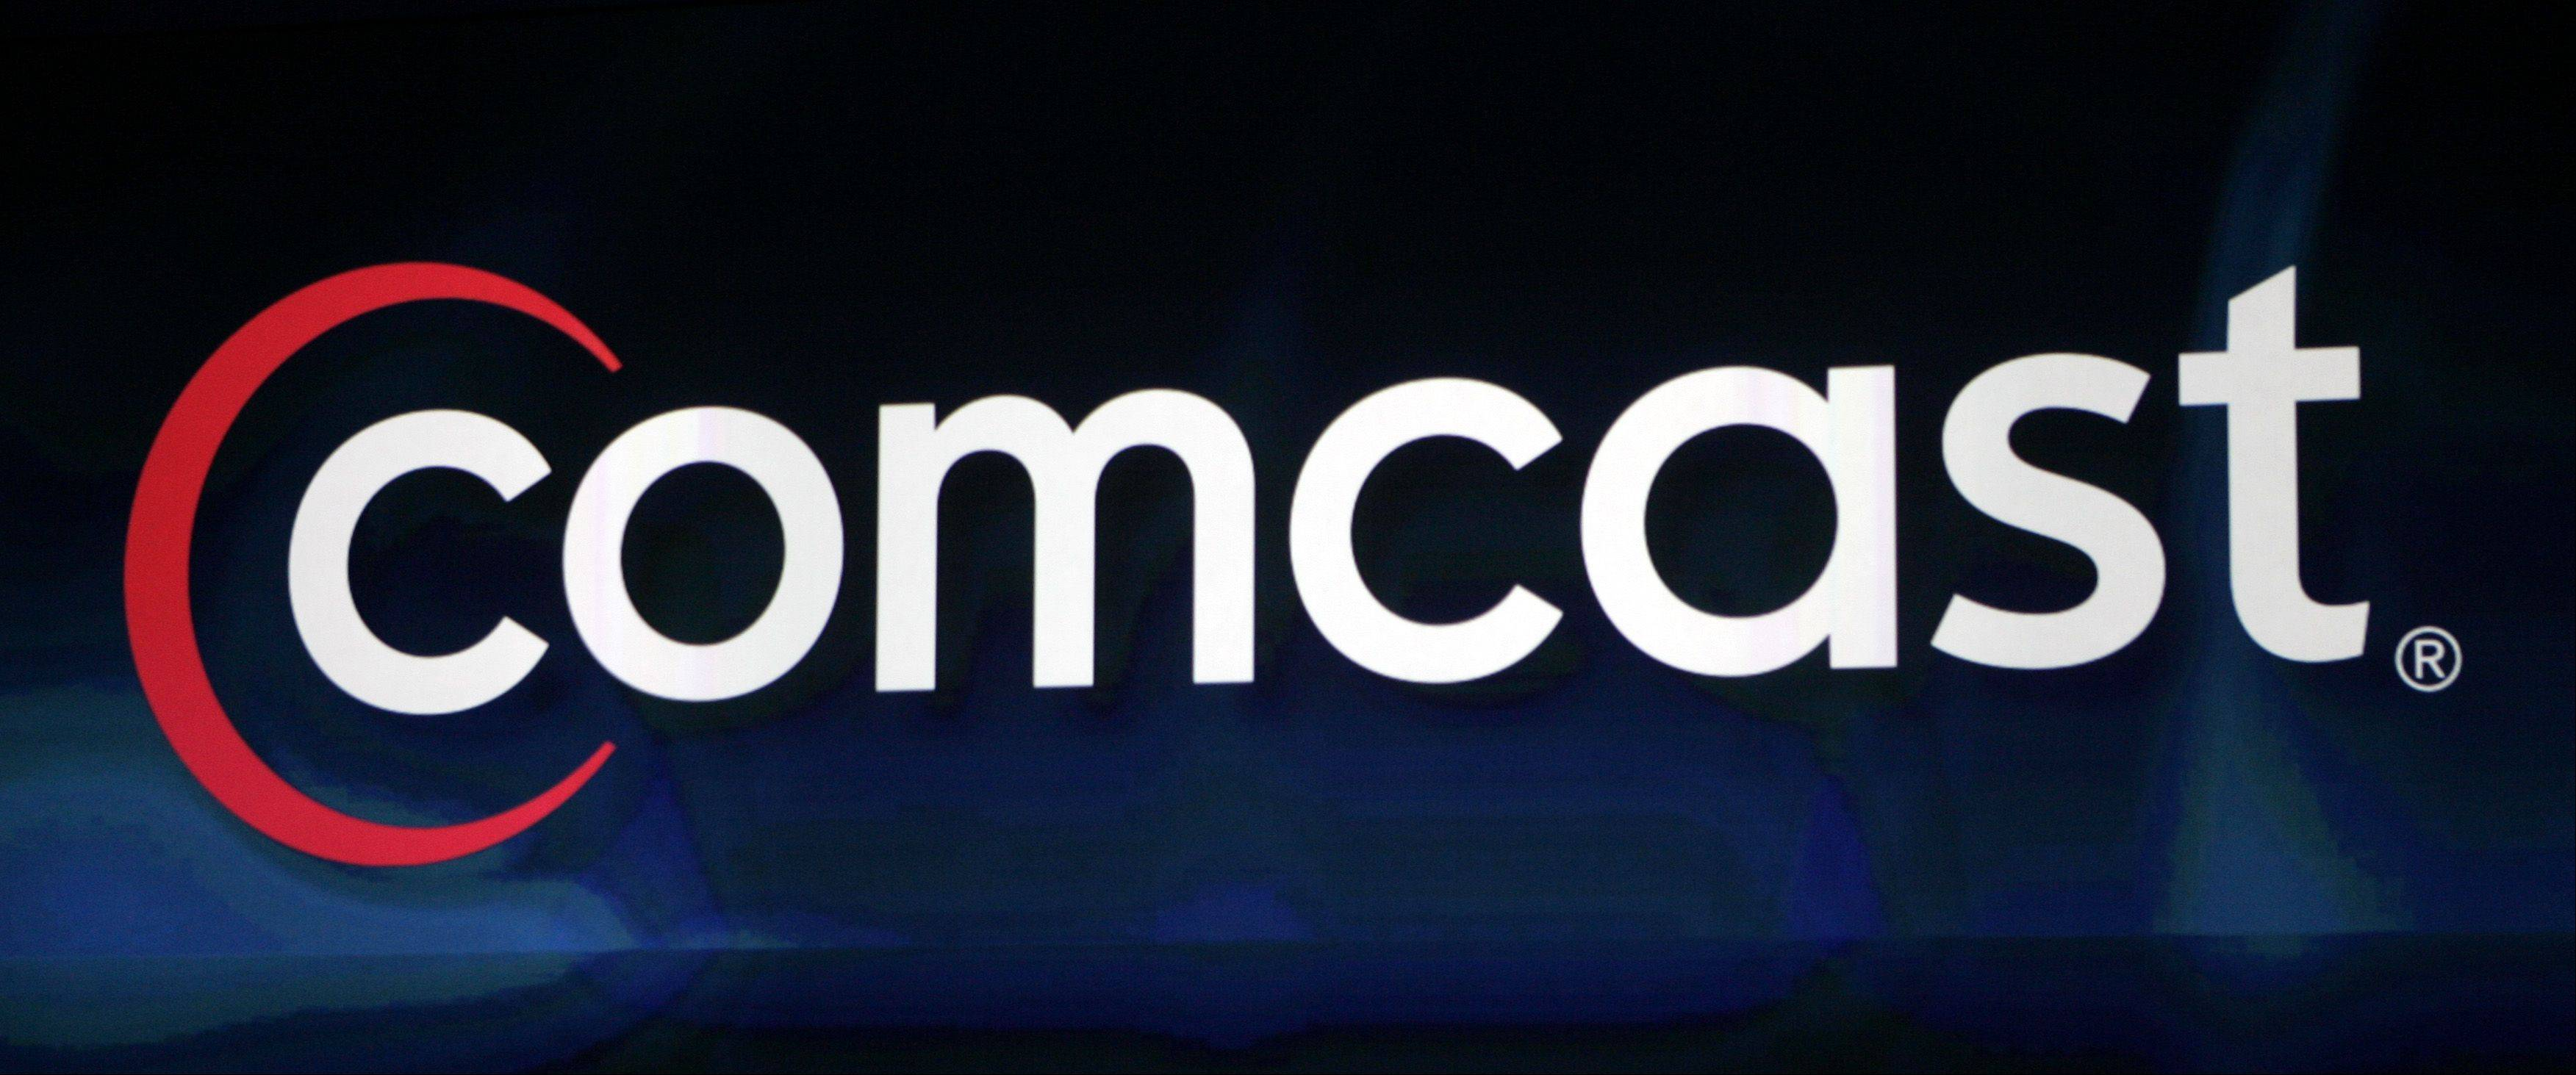 Comcast is using new dispatch technology and equipping all technicians with laptops and handheld devices to guarantee on-time arrival within shorter windows.